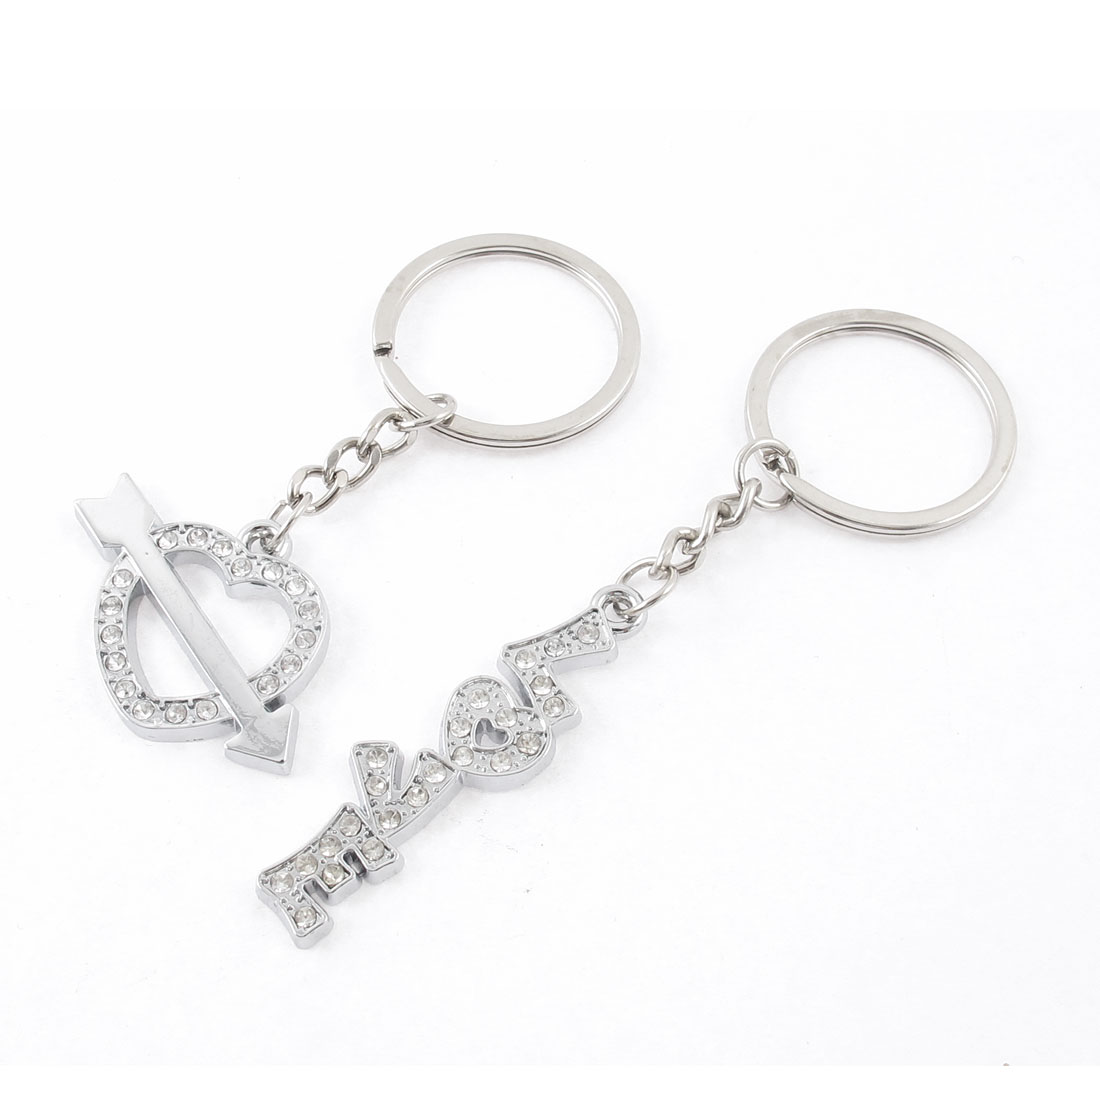 2 Pcs Rhinestones Detail Love Heart Design Couple Keychain Keyring